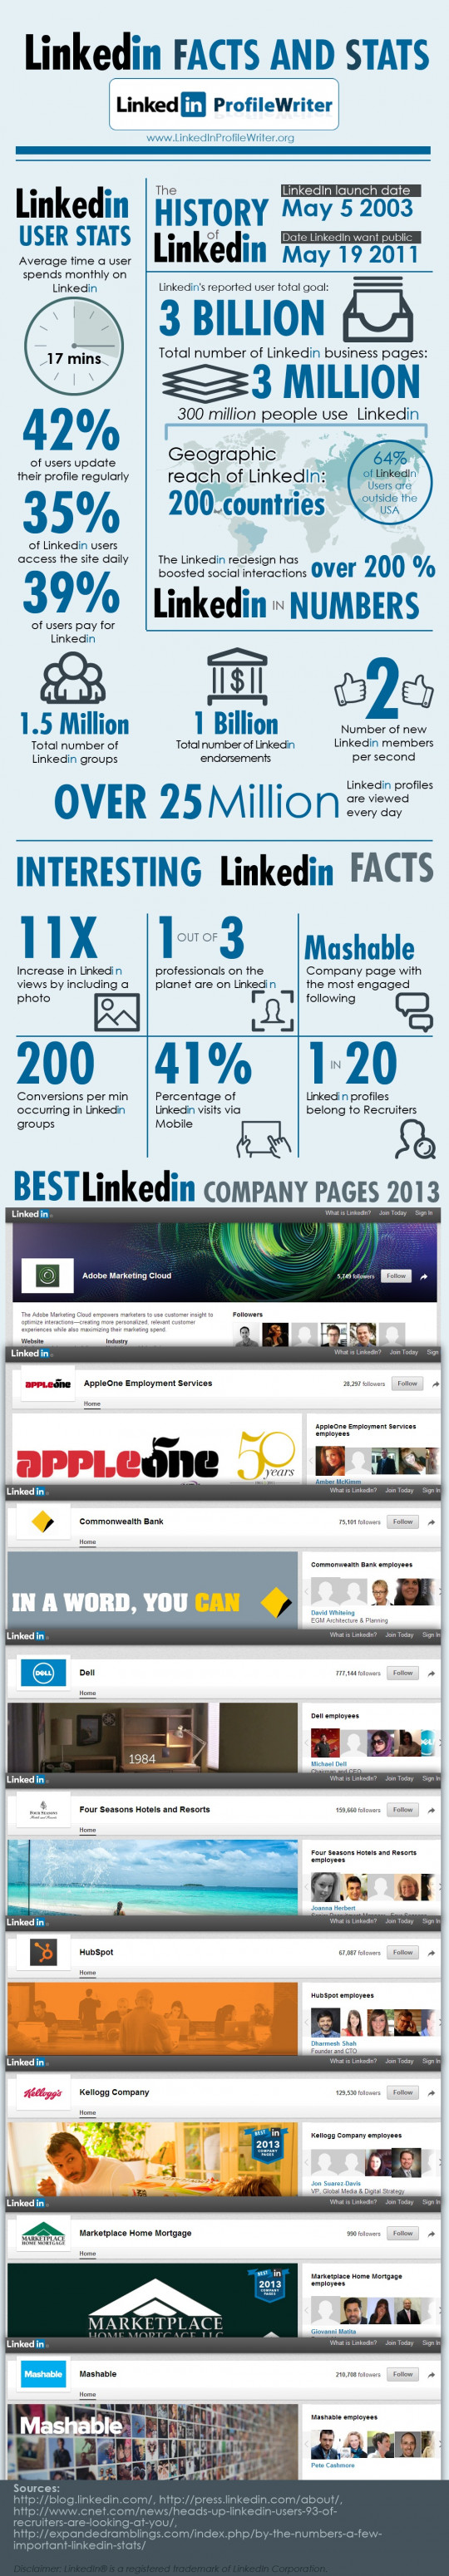 LinkedIn Facts and Stats Infographic